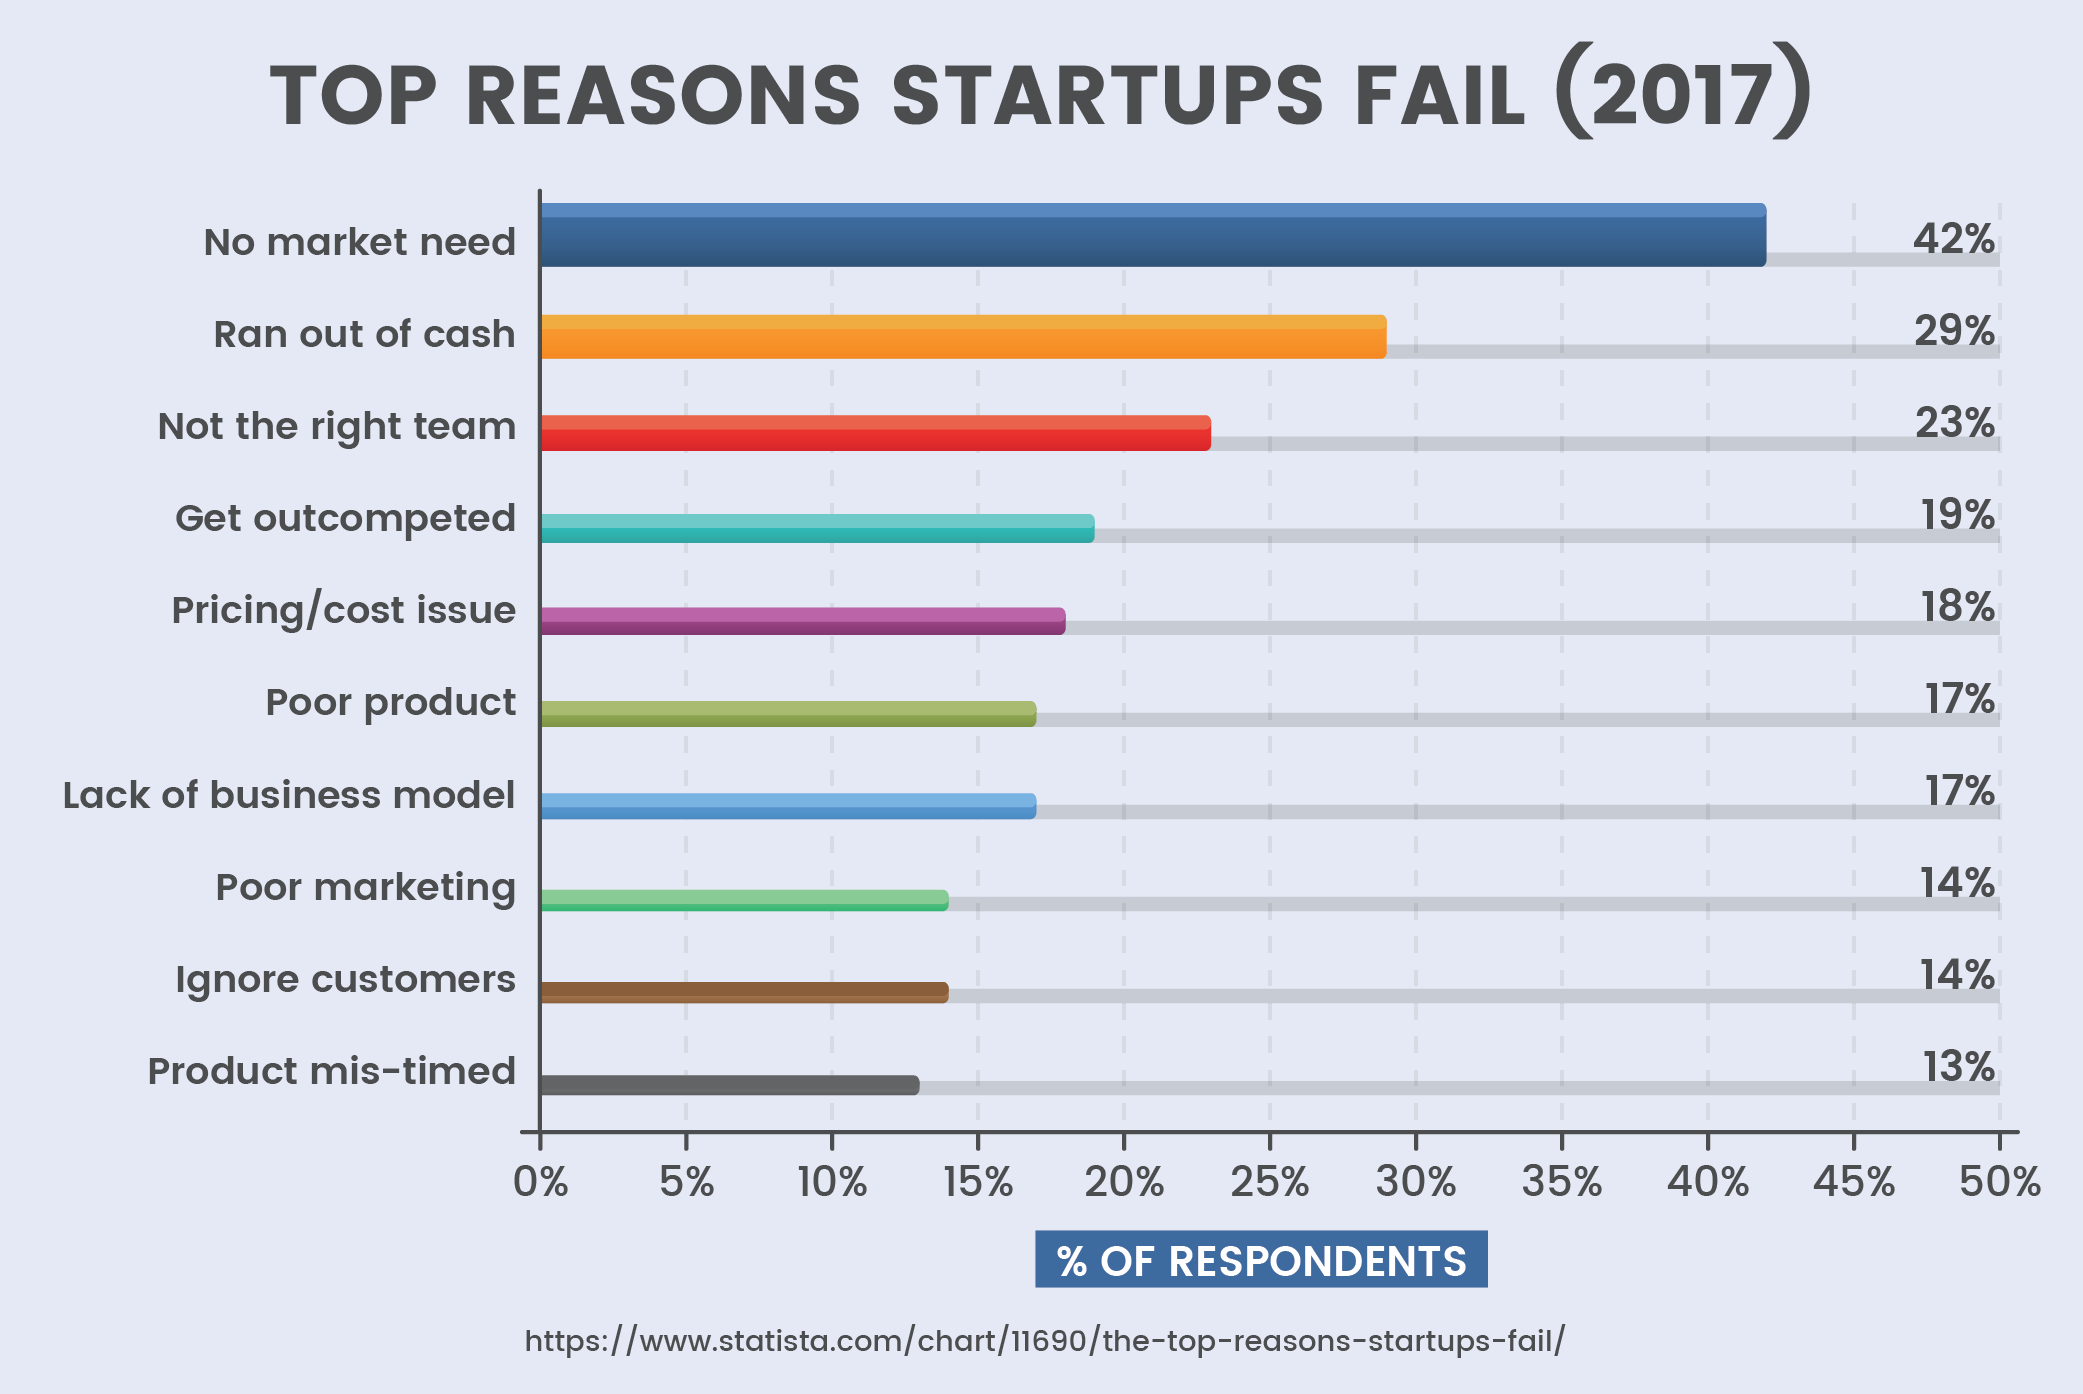 Top Reasons Startups Fail (2017)